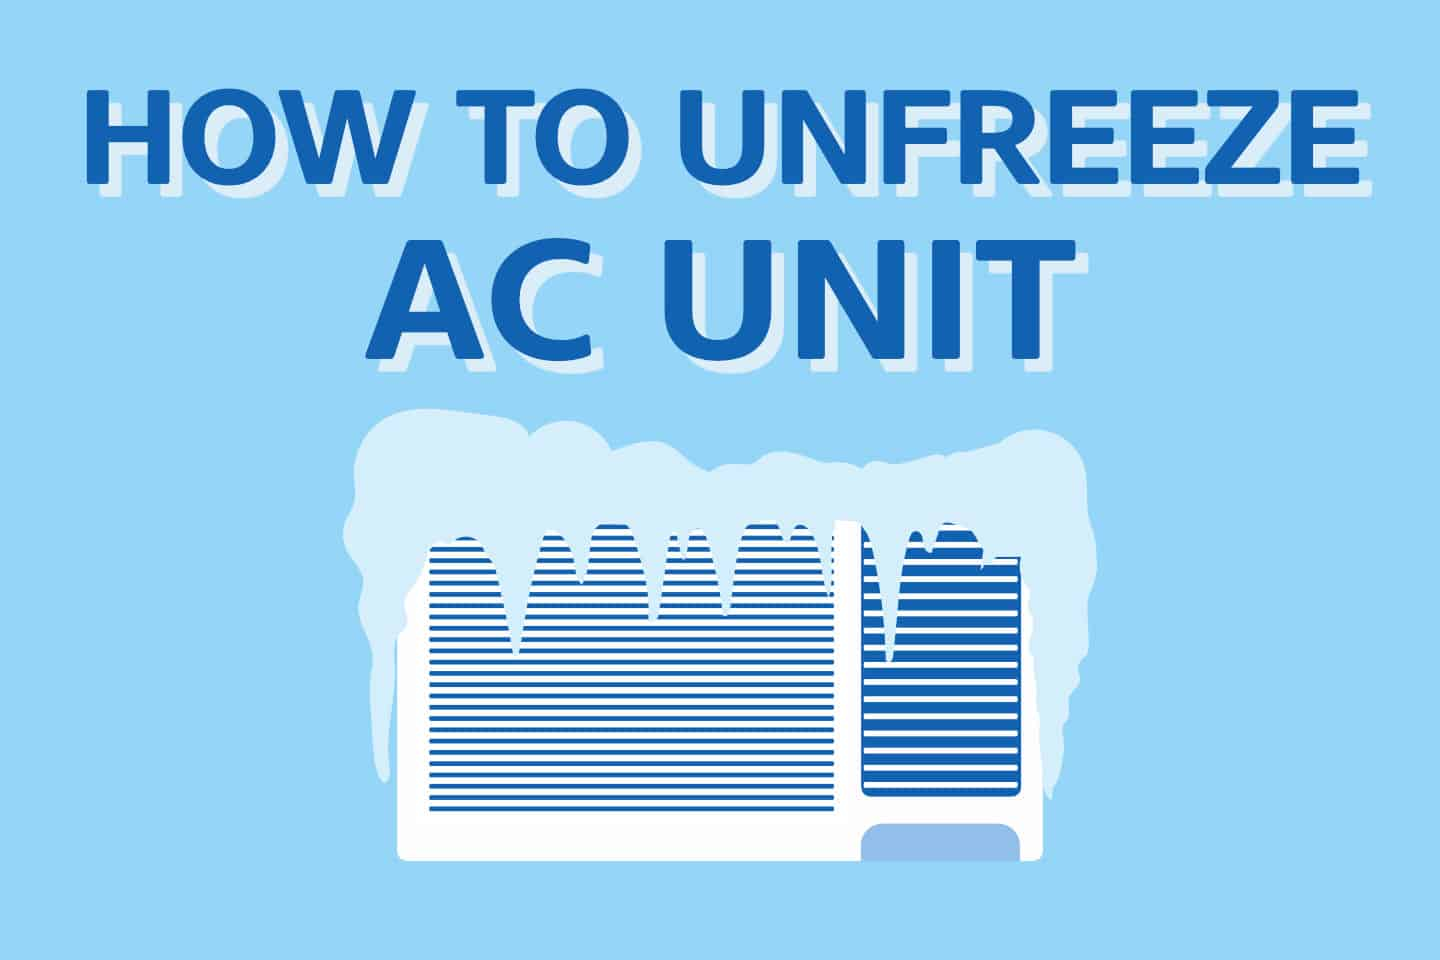 ❄️ How To Unfreeze Air Conditioner In 4 EASY Steps